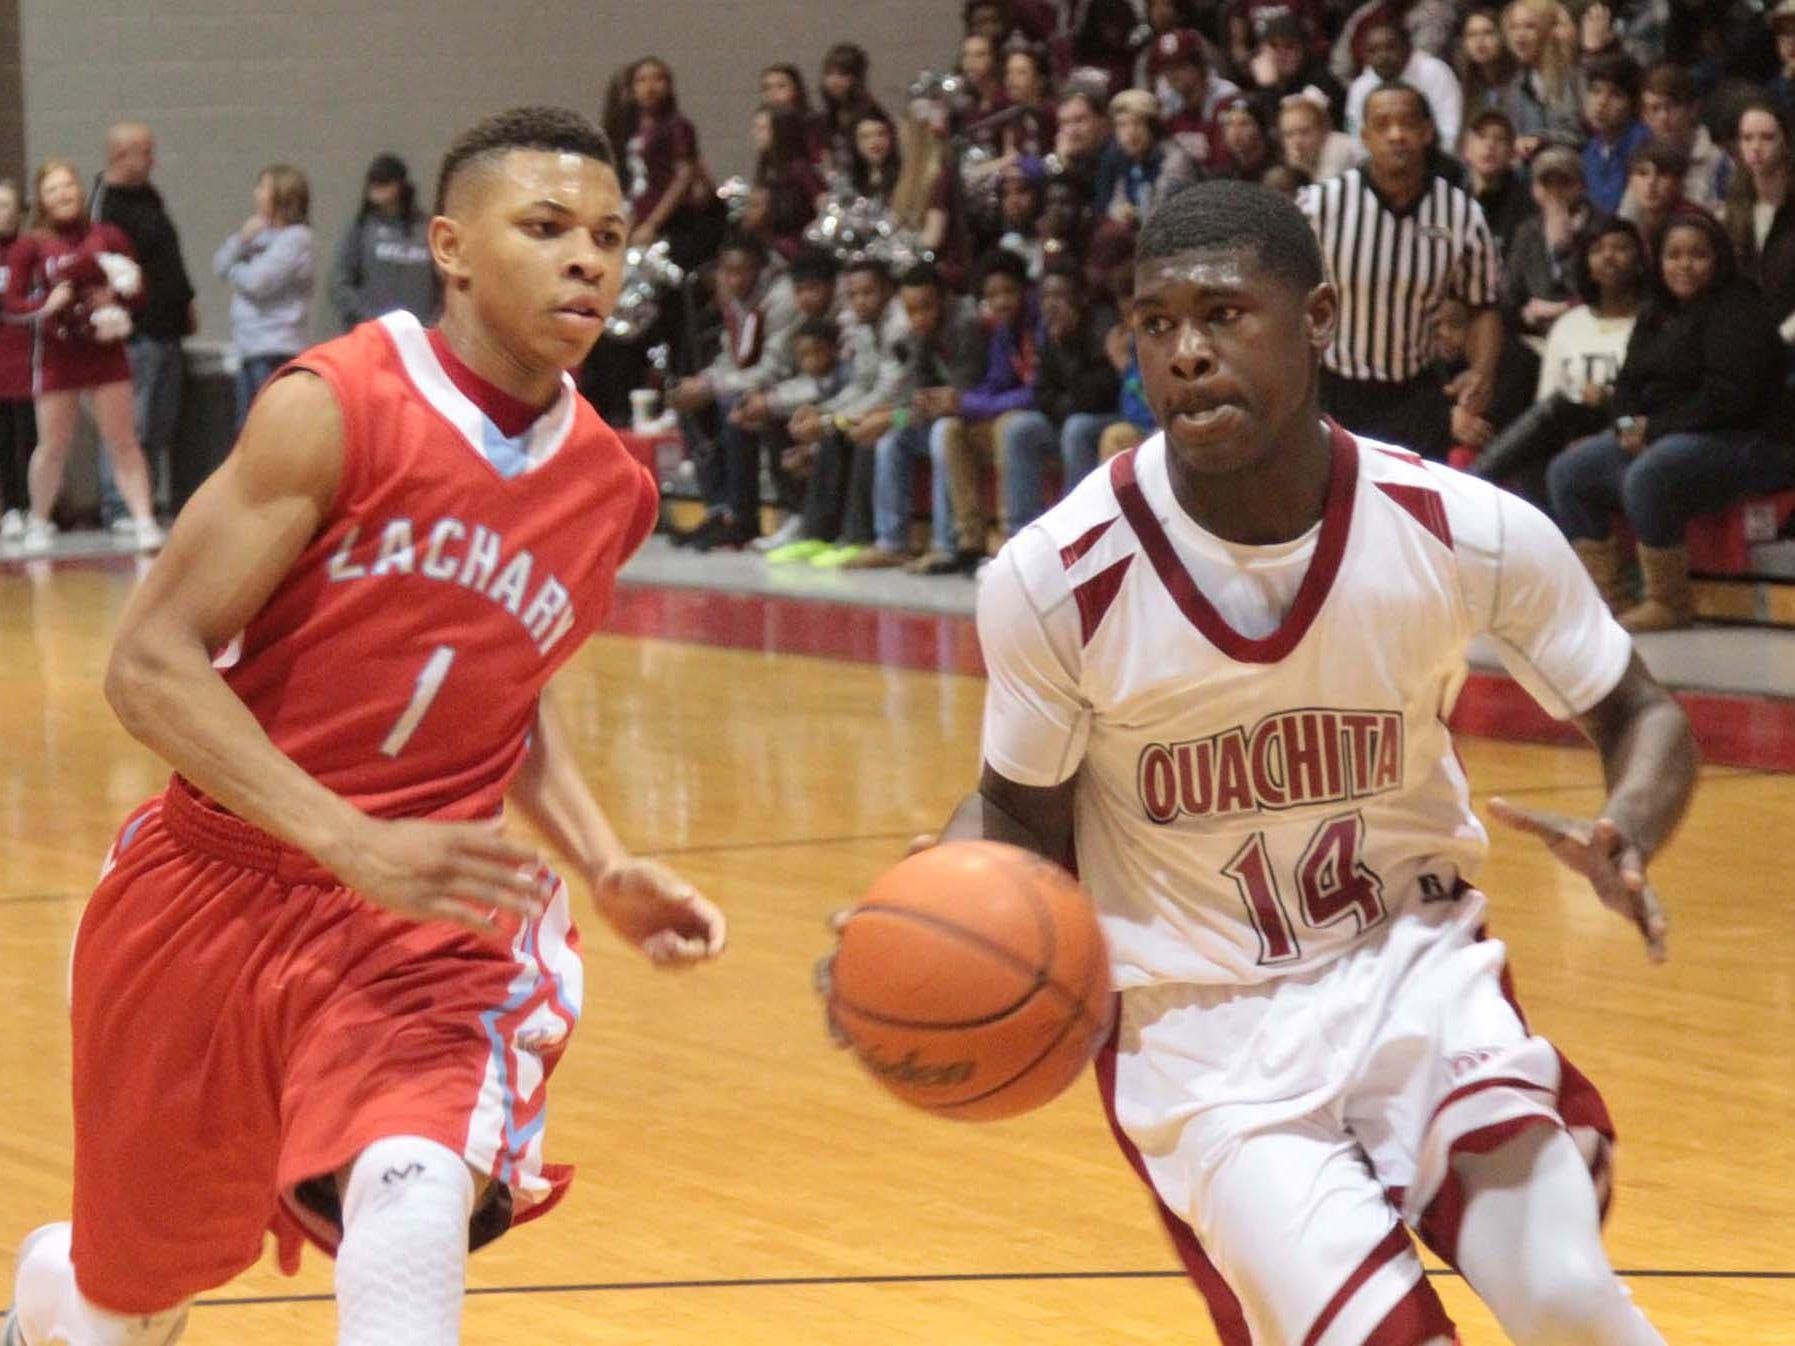 MARGARET CROFT/THE NEWS-STAR Ouachita guard Cephus Gix (left) scored 20 points on Tuesday at Ruston. Ouachita hosts Zachary in first-round action of the LHSAA Class 5A Boys Basketball championships on Friday.